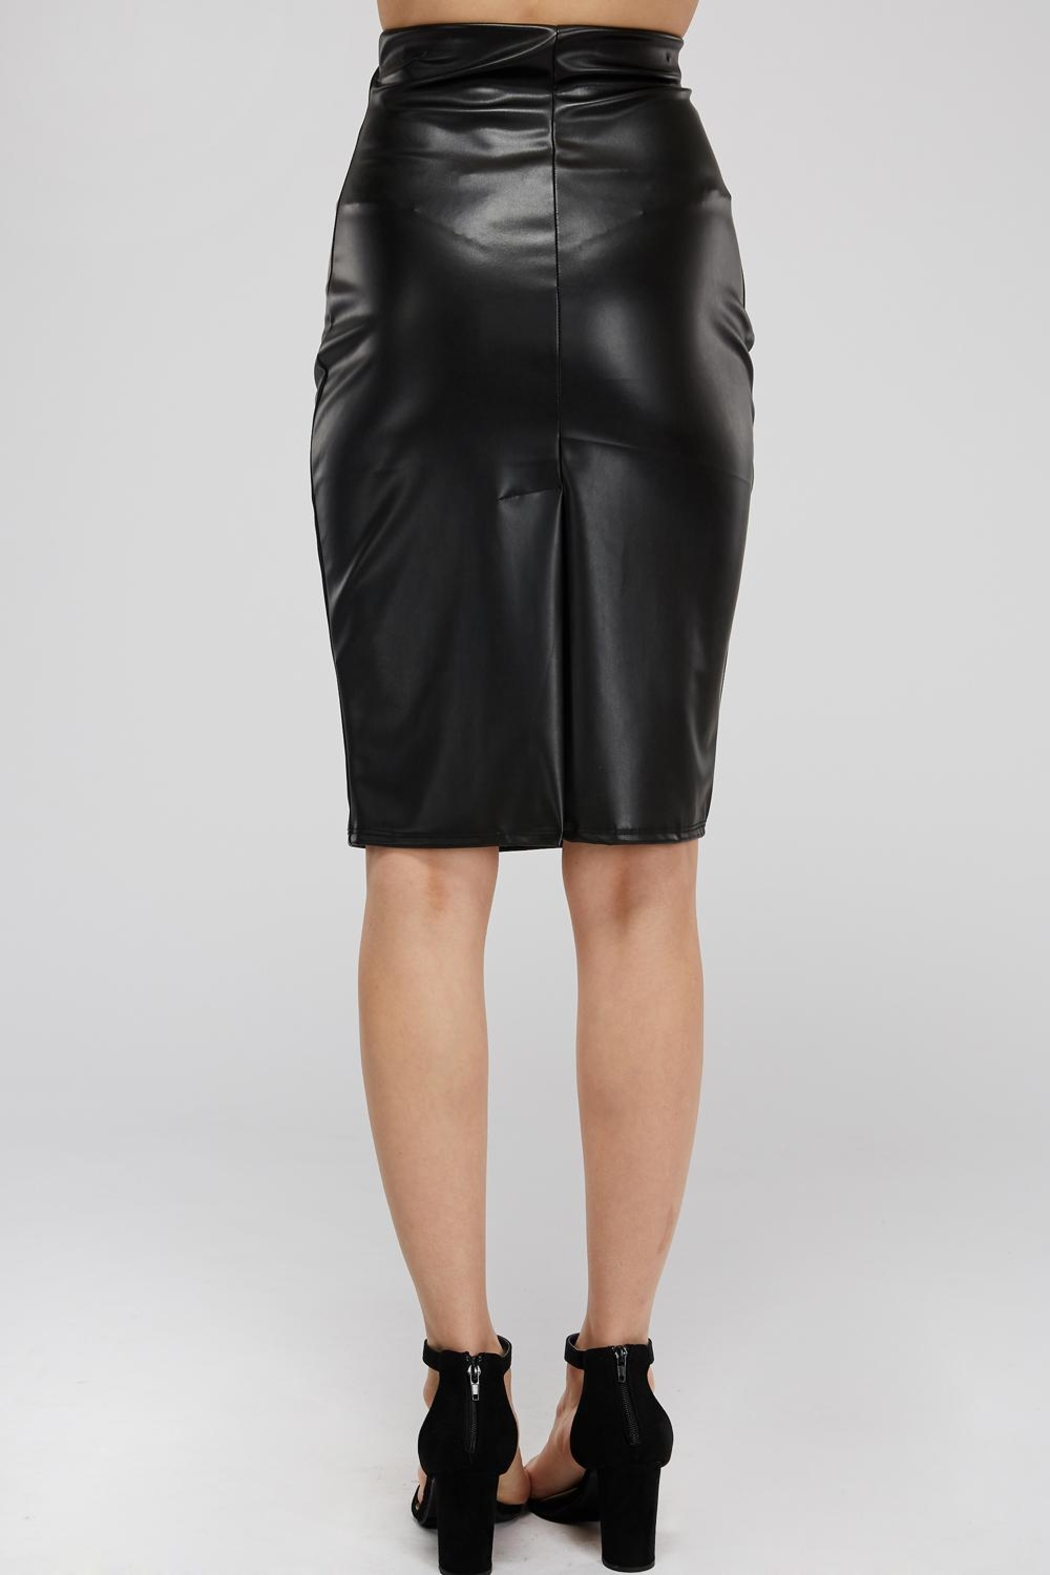 K too Pu Pencil Skirt - Side Cropped Image